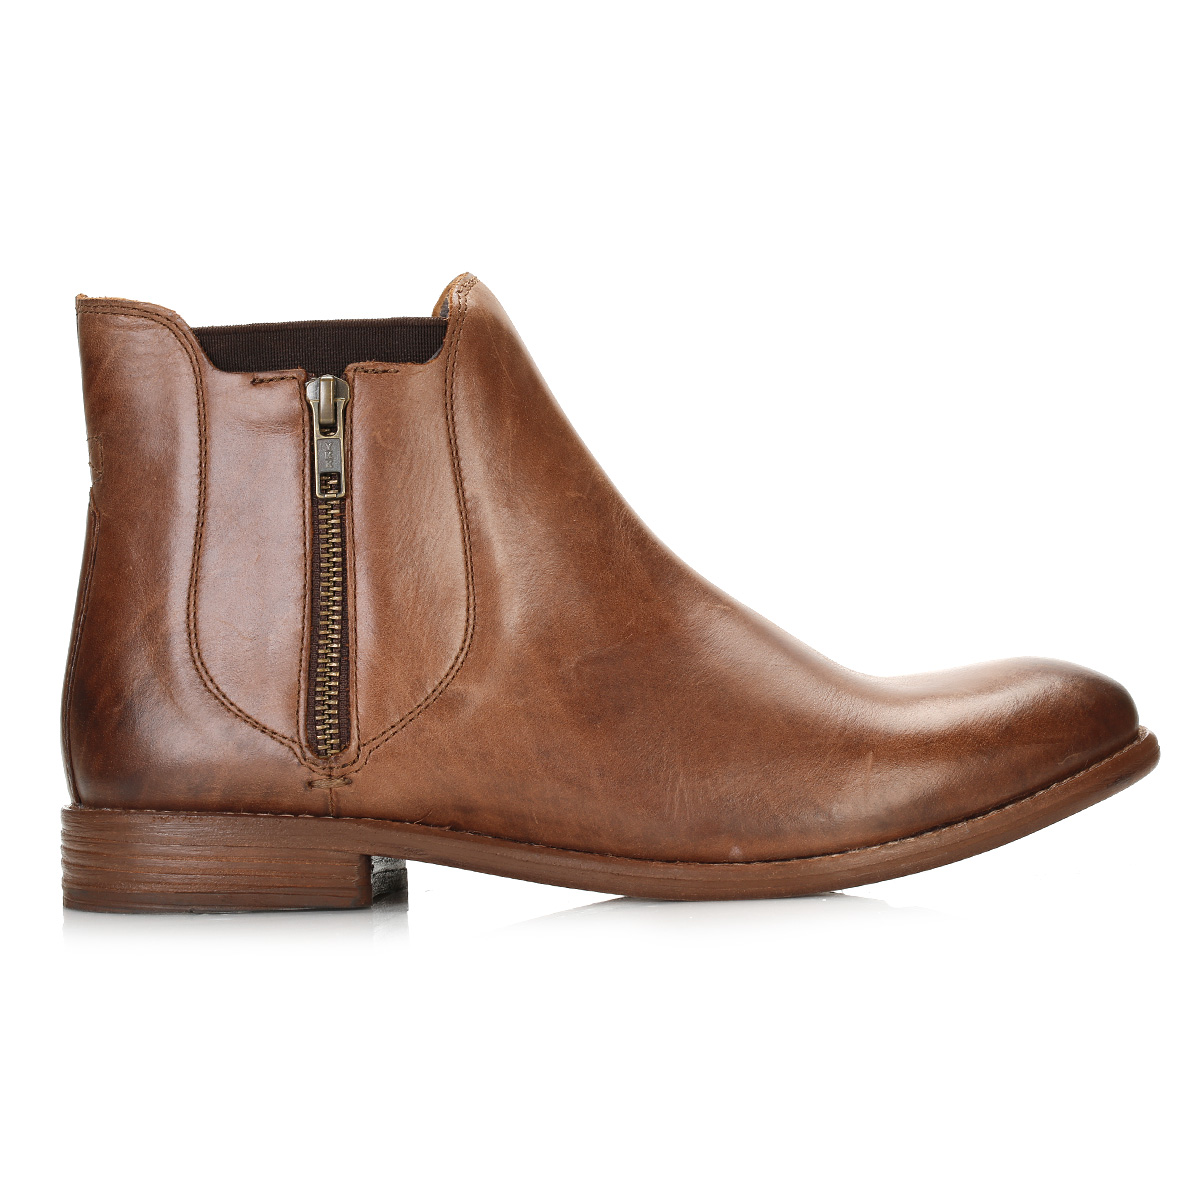 Free shipping BOTH ways on del toro leather zip chelsea boot, from our vast selection of styles. Fast delivery, and 24/7/ real-person service with a smile. Click or call